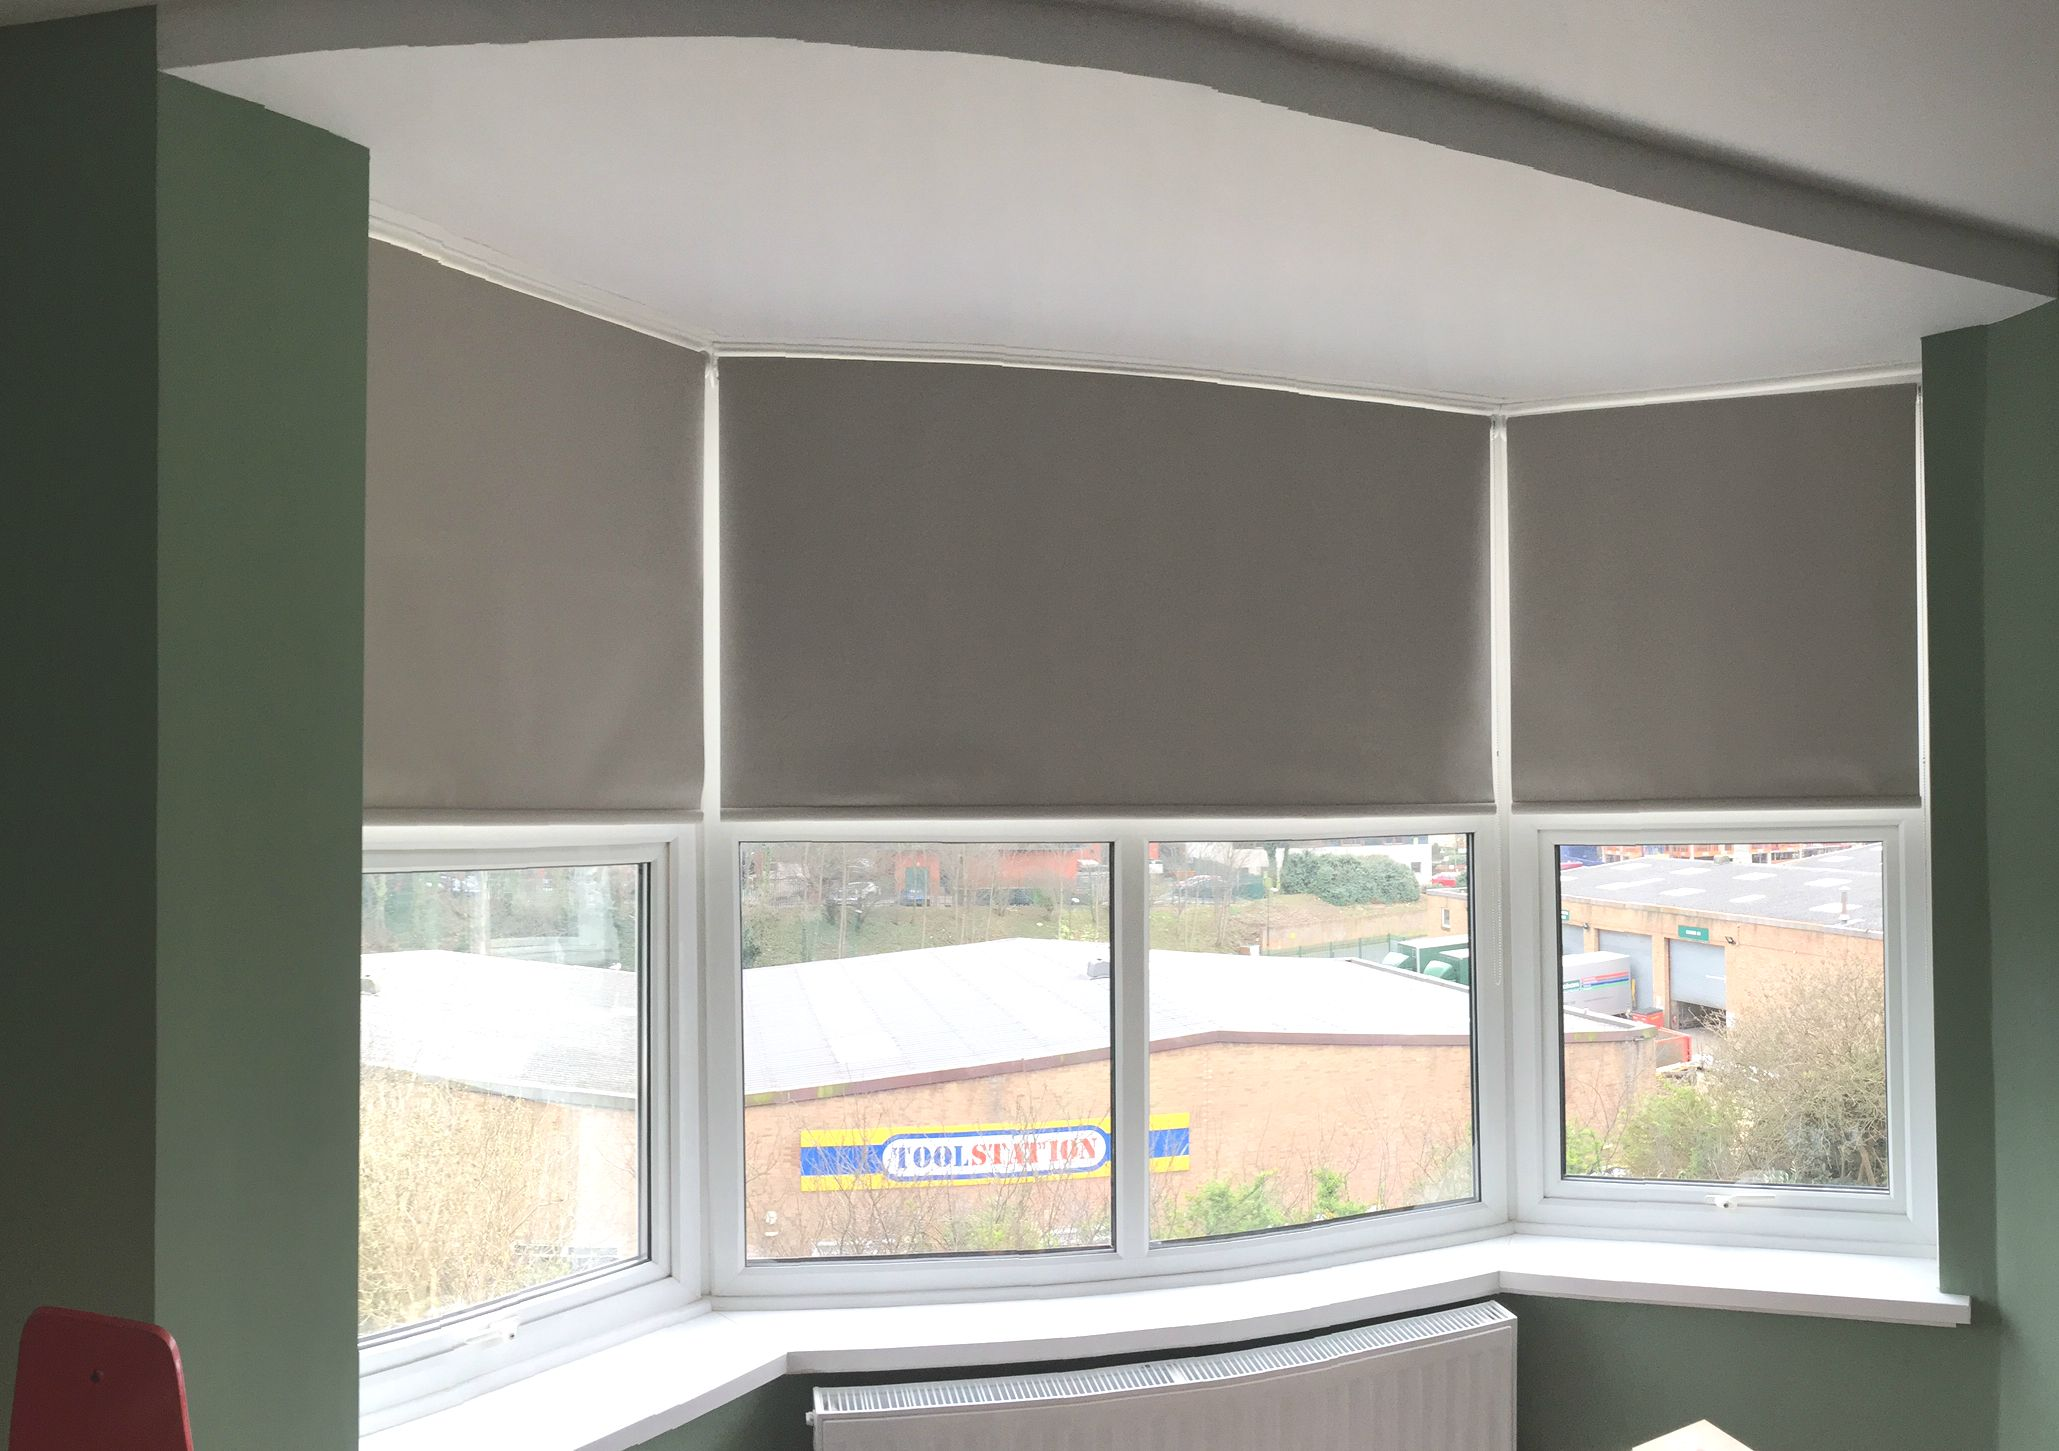 Blackout Roller Blinds For Bay Window Bedroom In Flint Grey Colour Made To Measure Hove